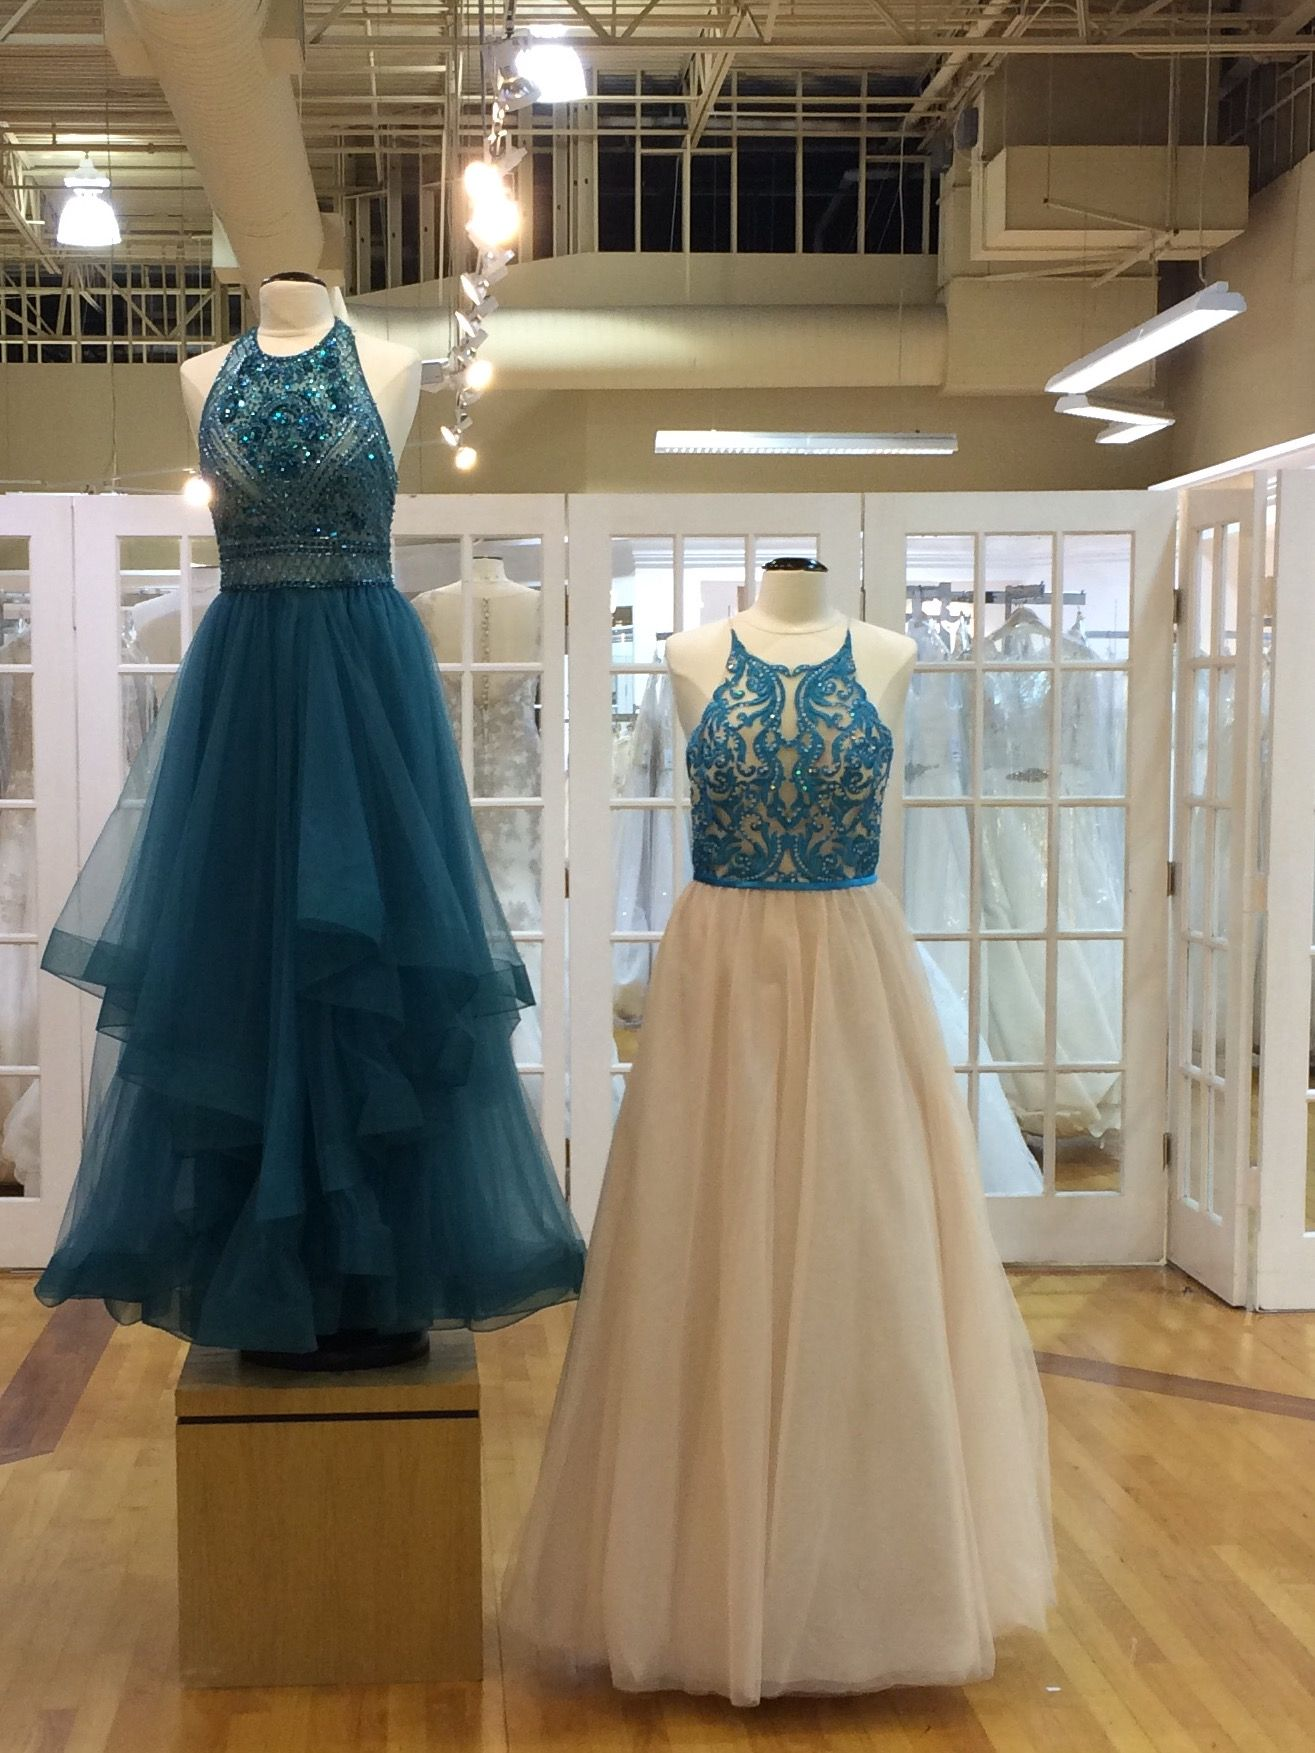 Pin by anna jenkins on prom dresses pinterest prom prom ideas